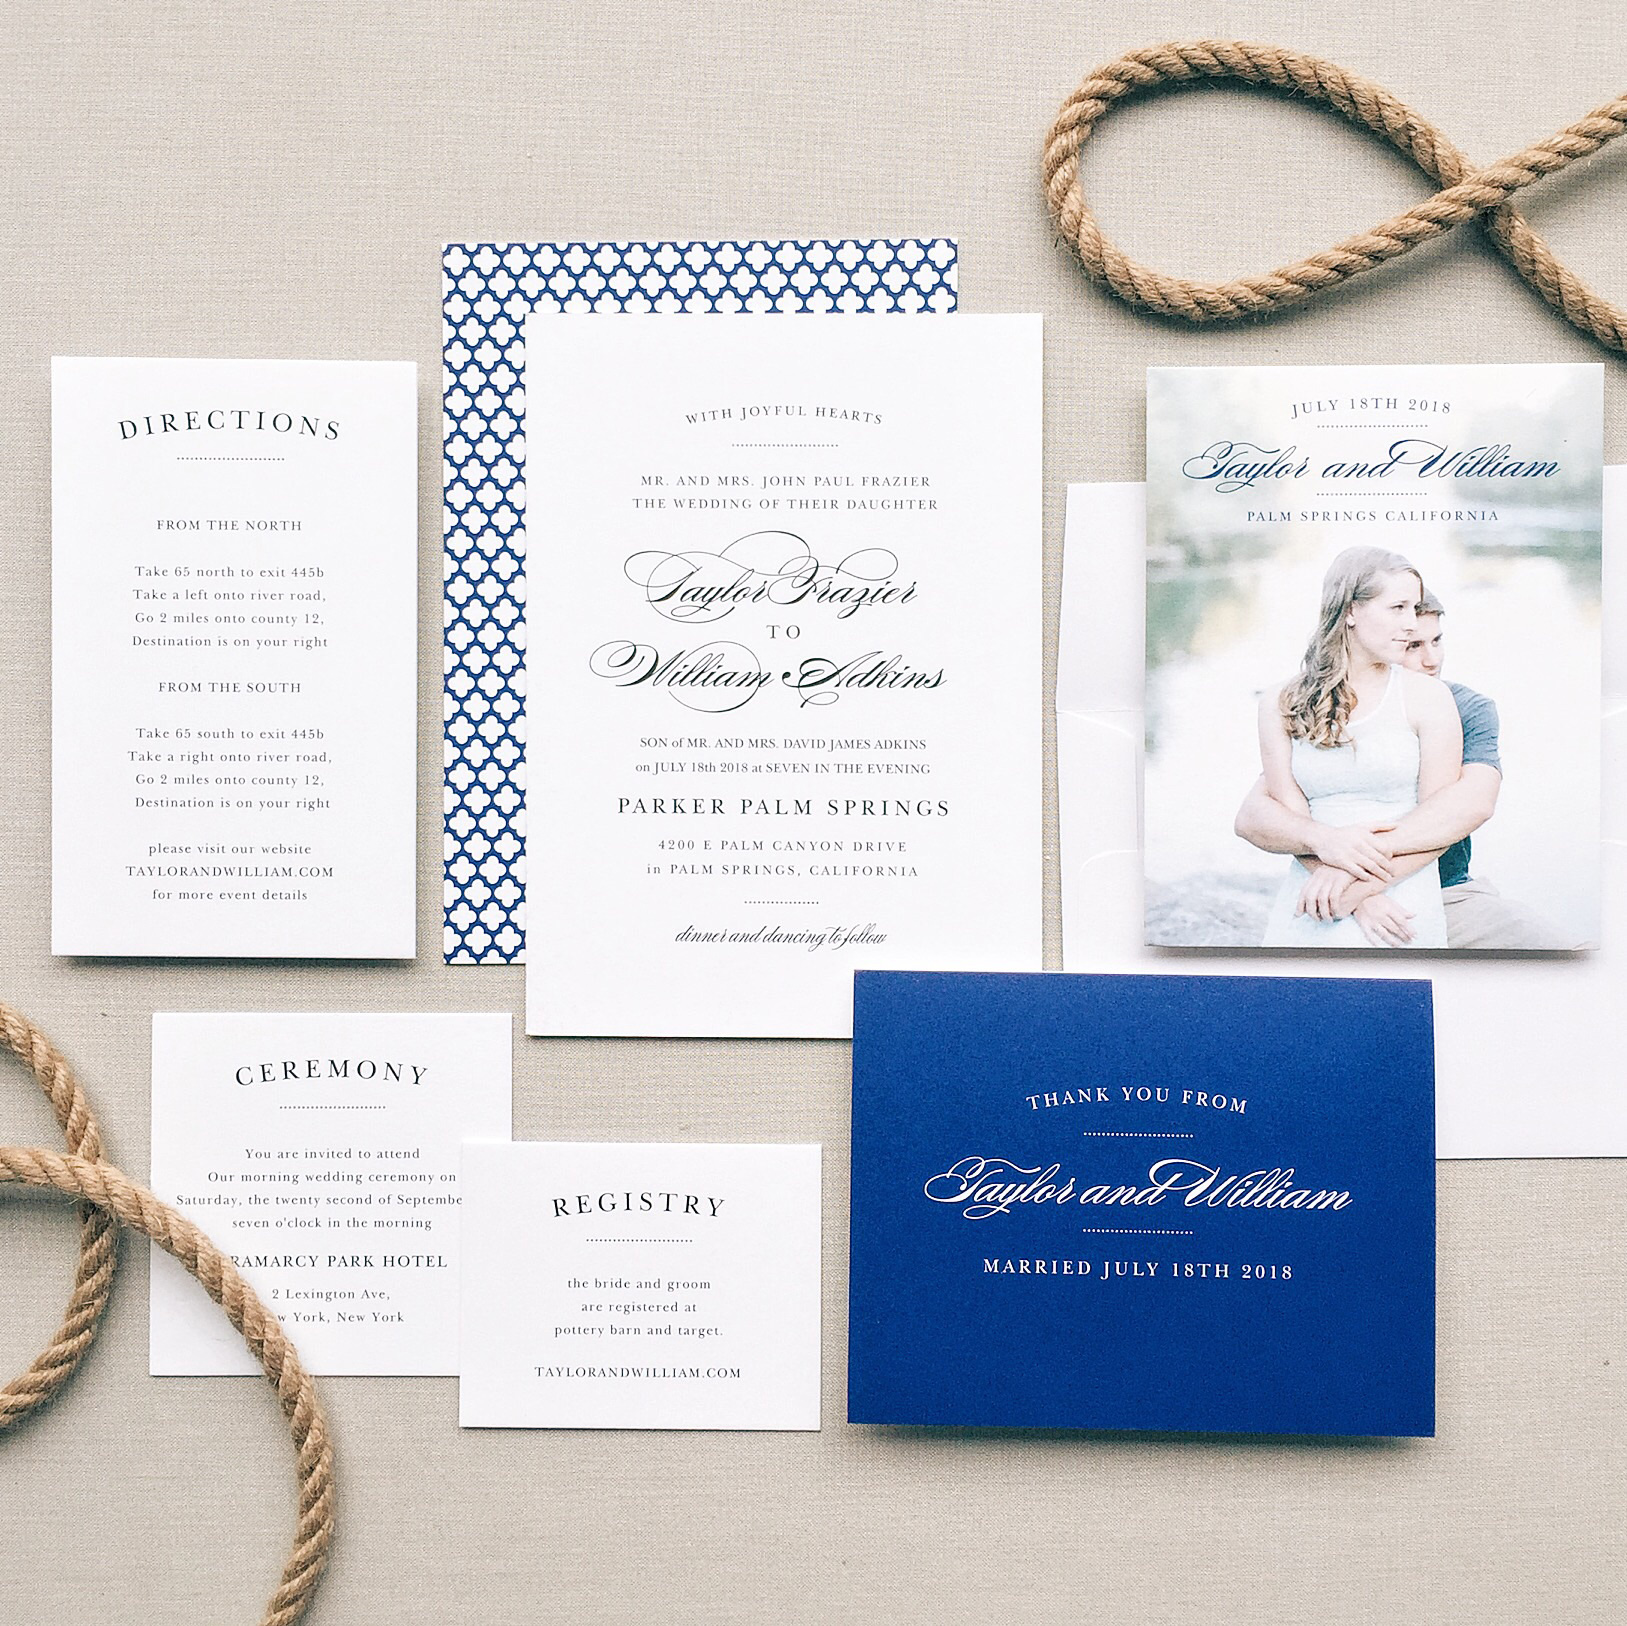 Wedding Invitations And Save The Date Cards With Basic